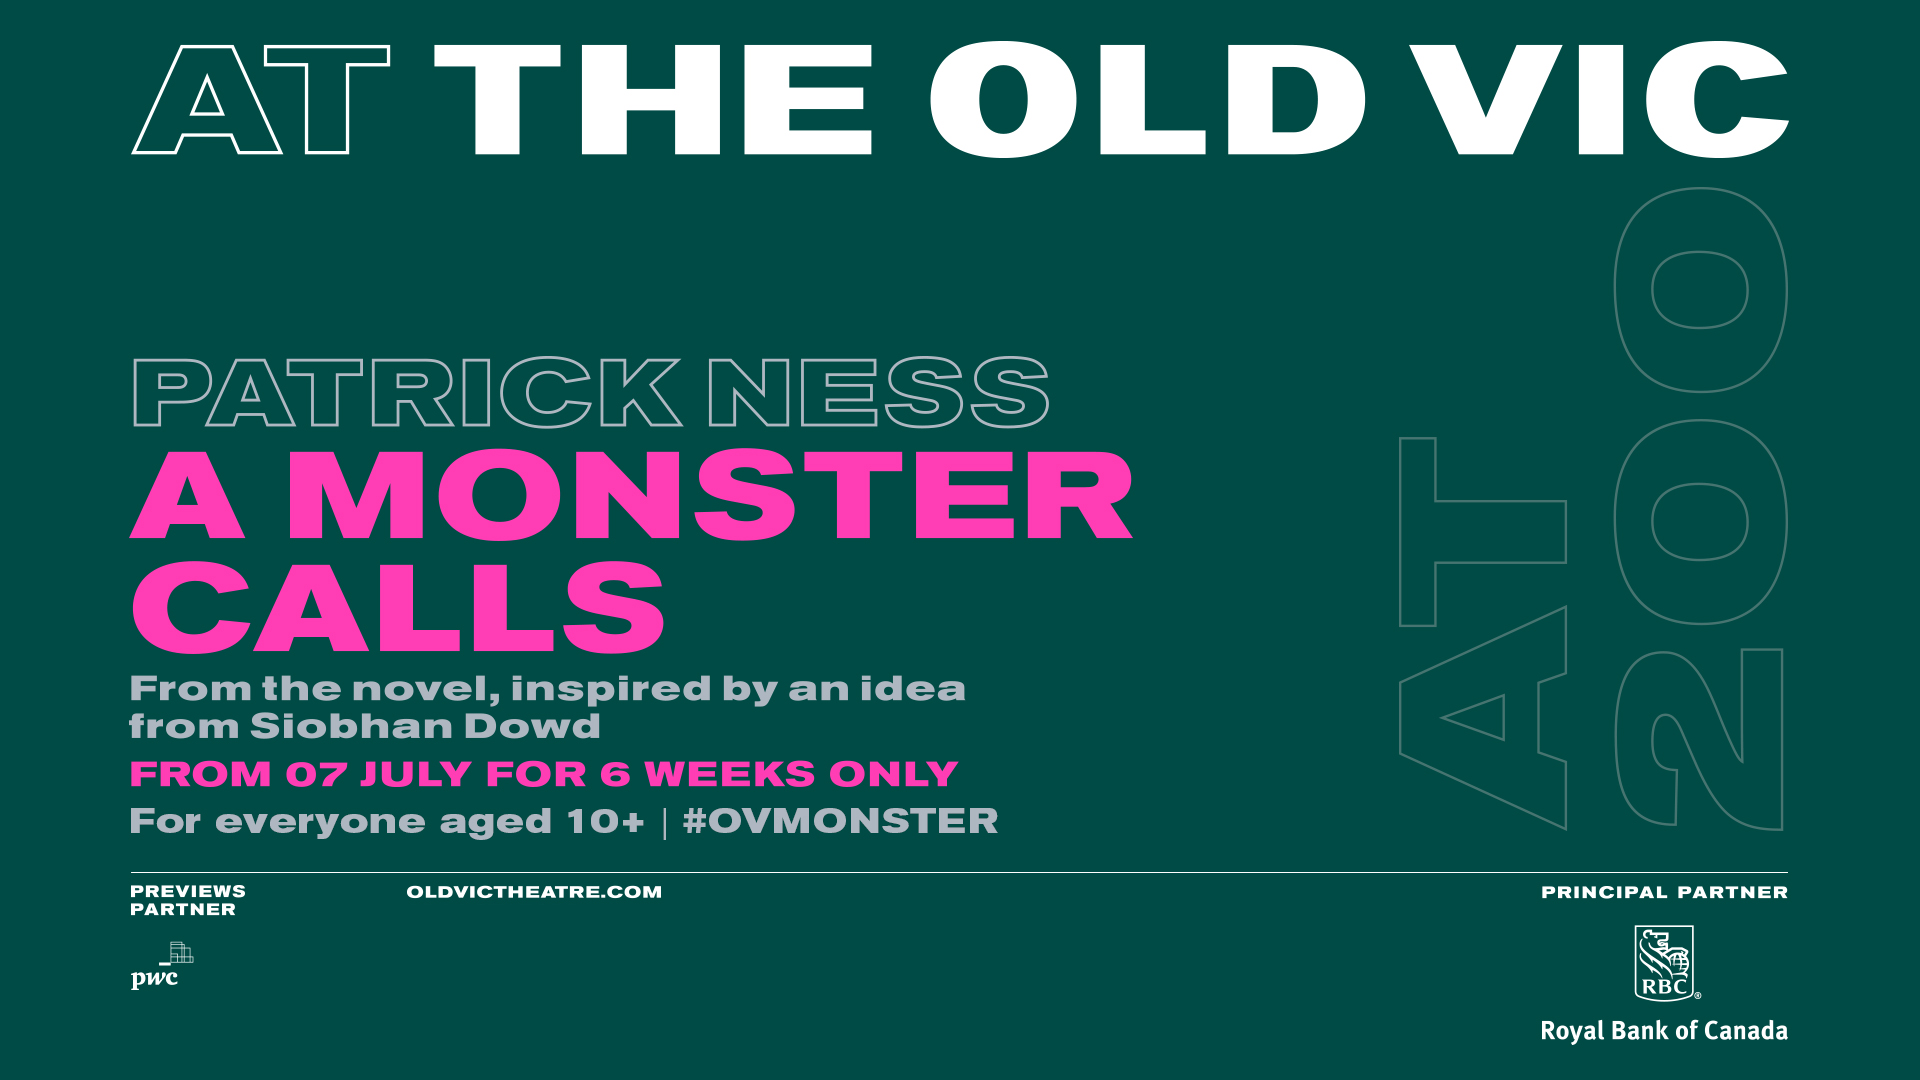 A Monster Calls at The Old Vic. Image courtesy of The Old Vic.